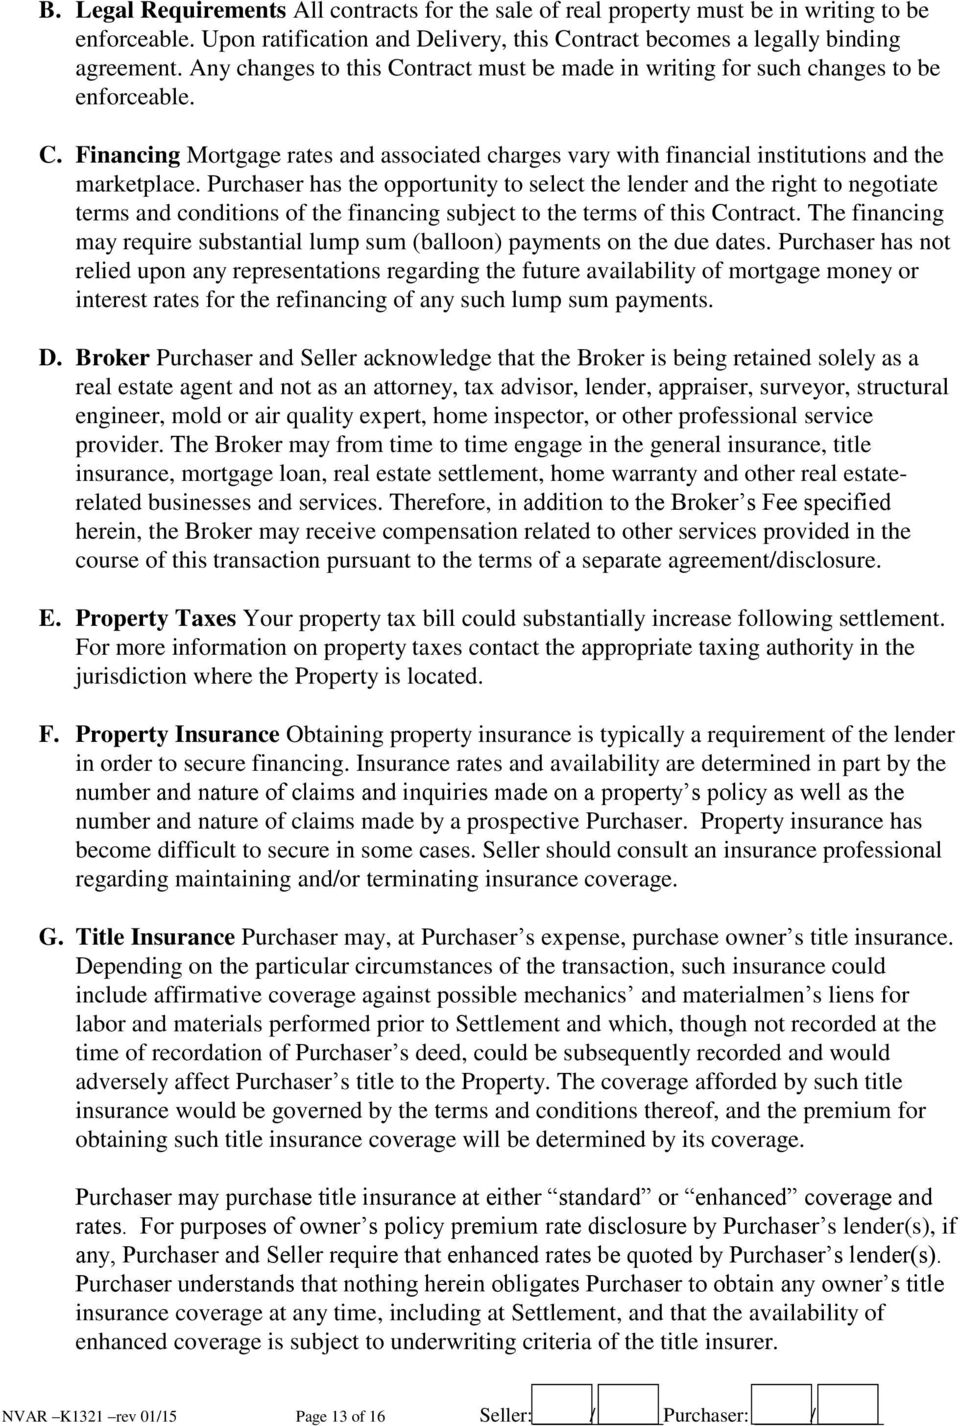 Residential Sales Contract Virginia Pdf